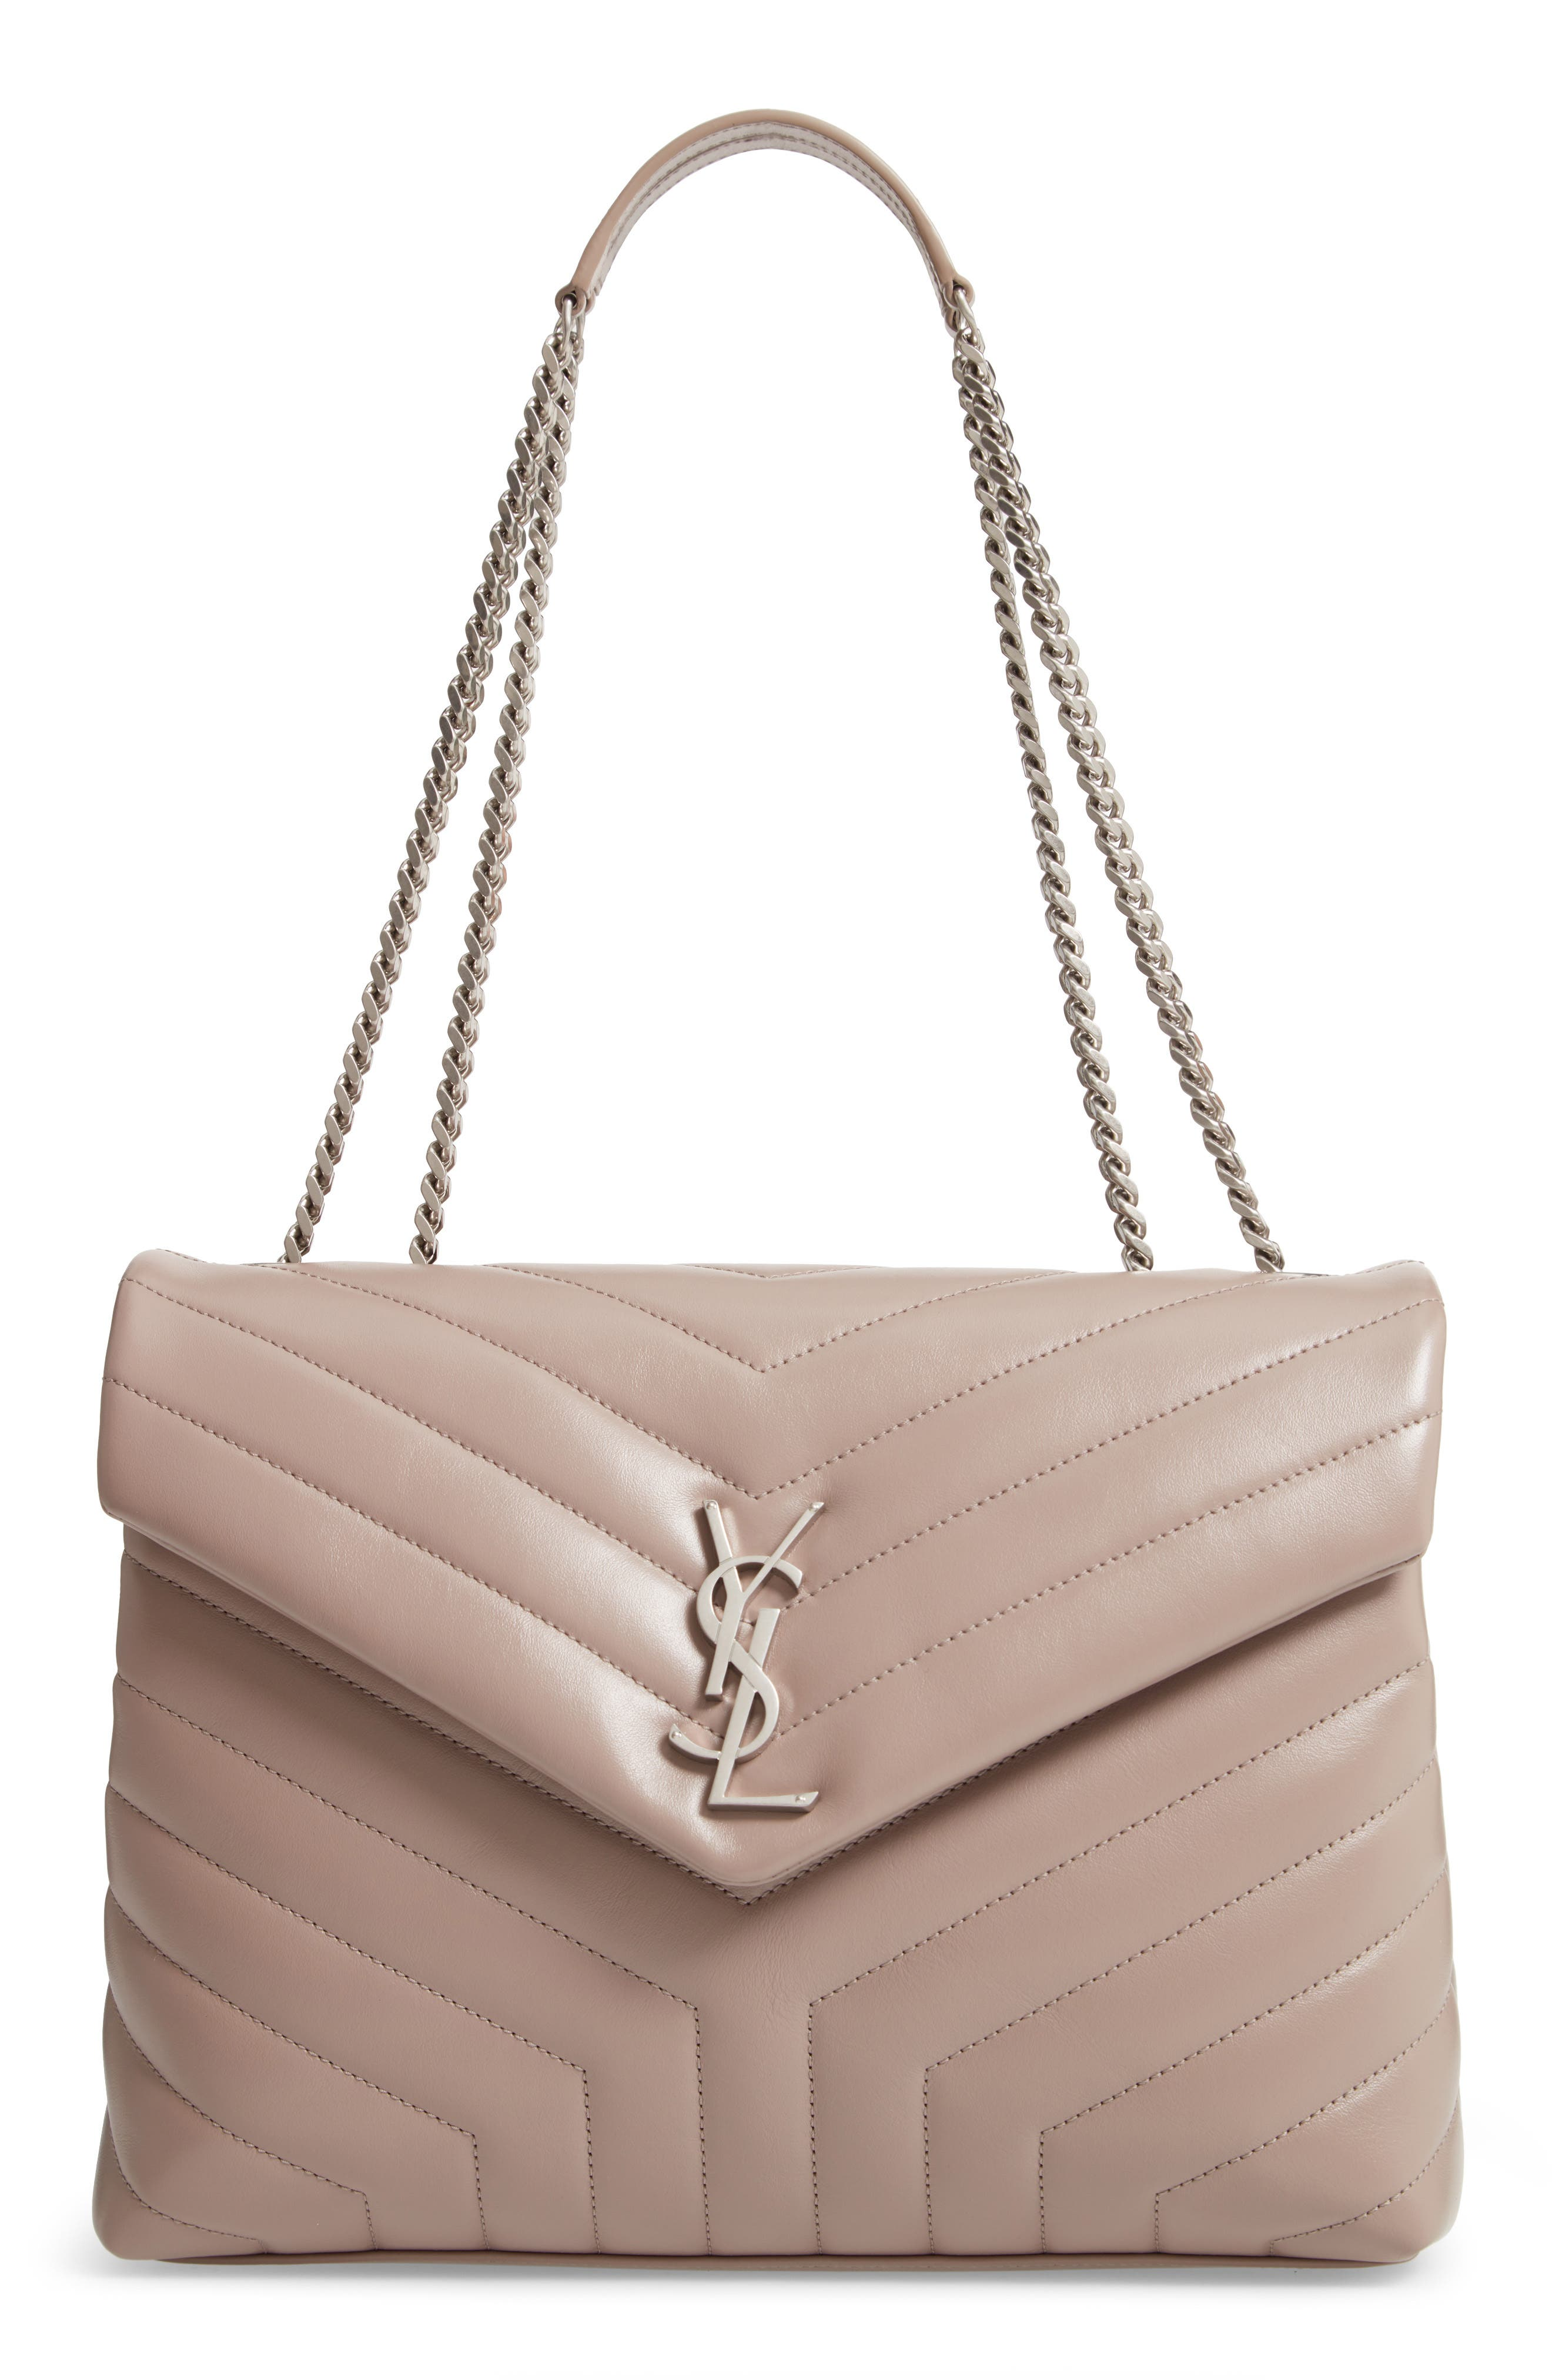 Monogram Loulou Medium Leather Shoulder Bag - Beige, Tan